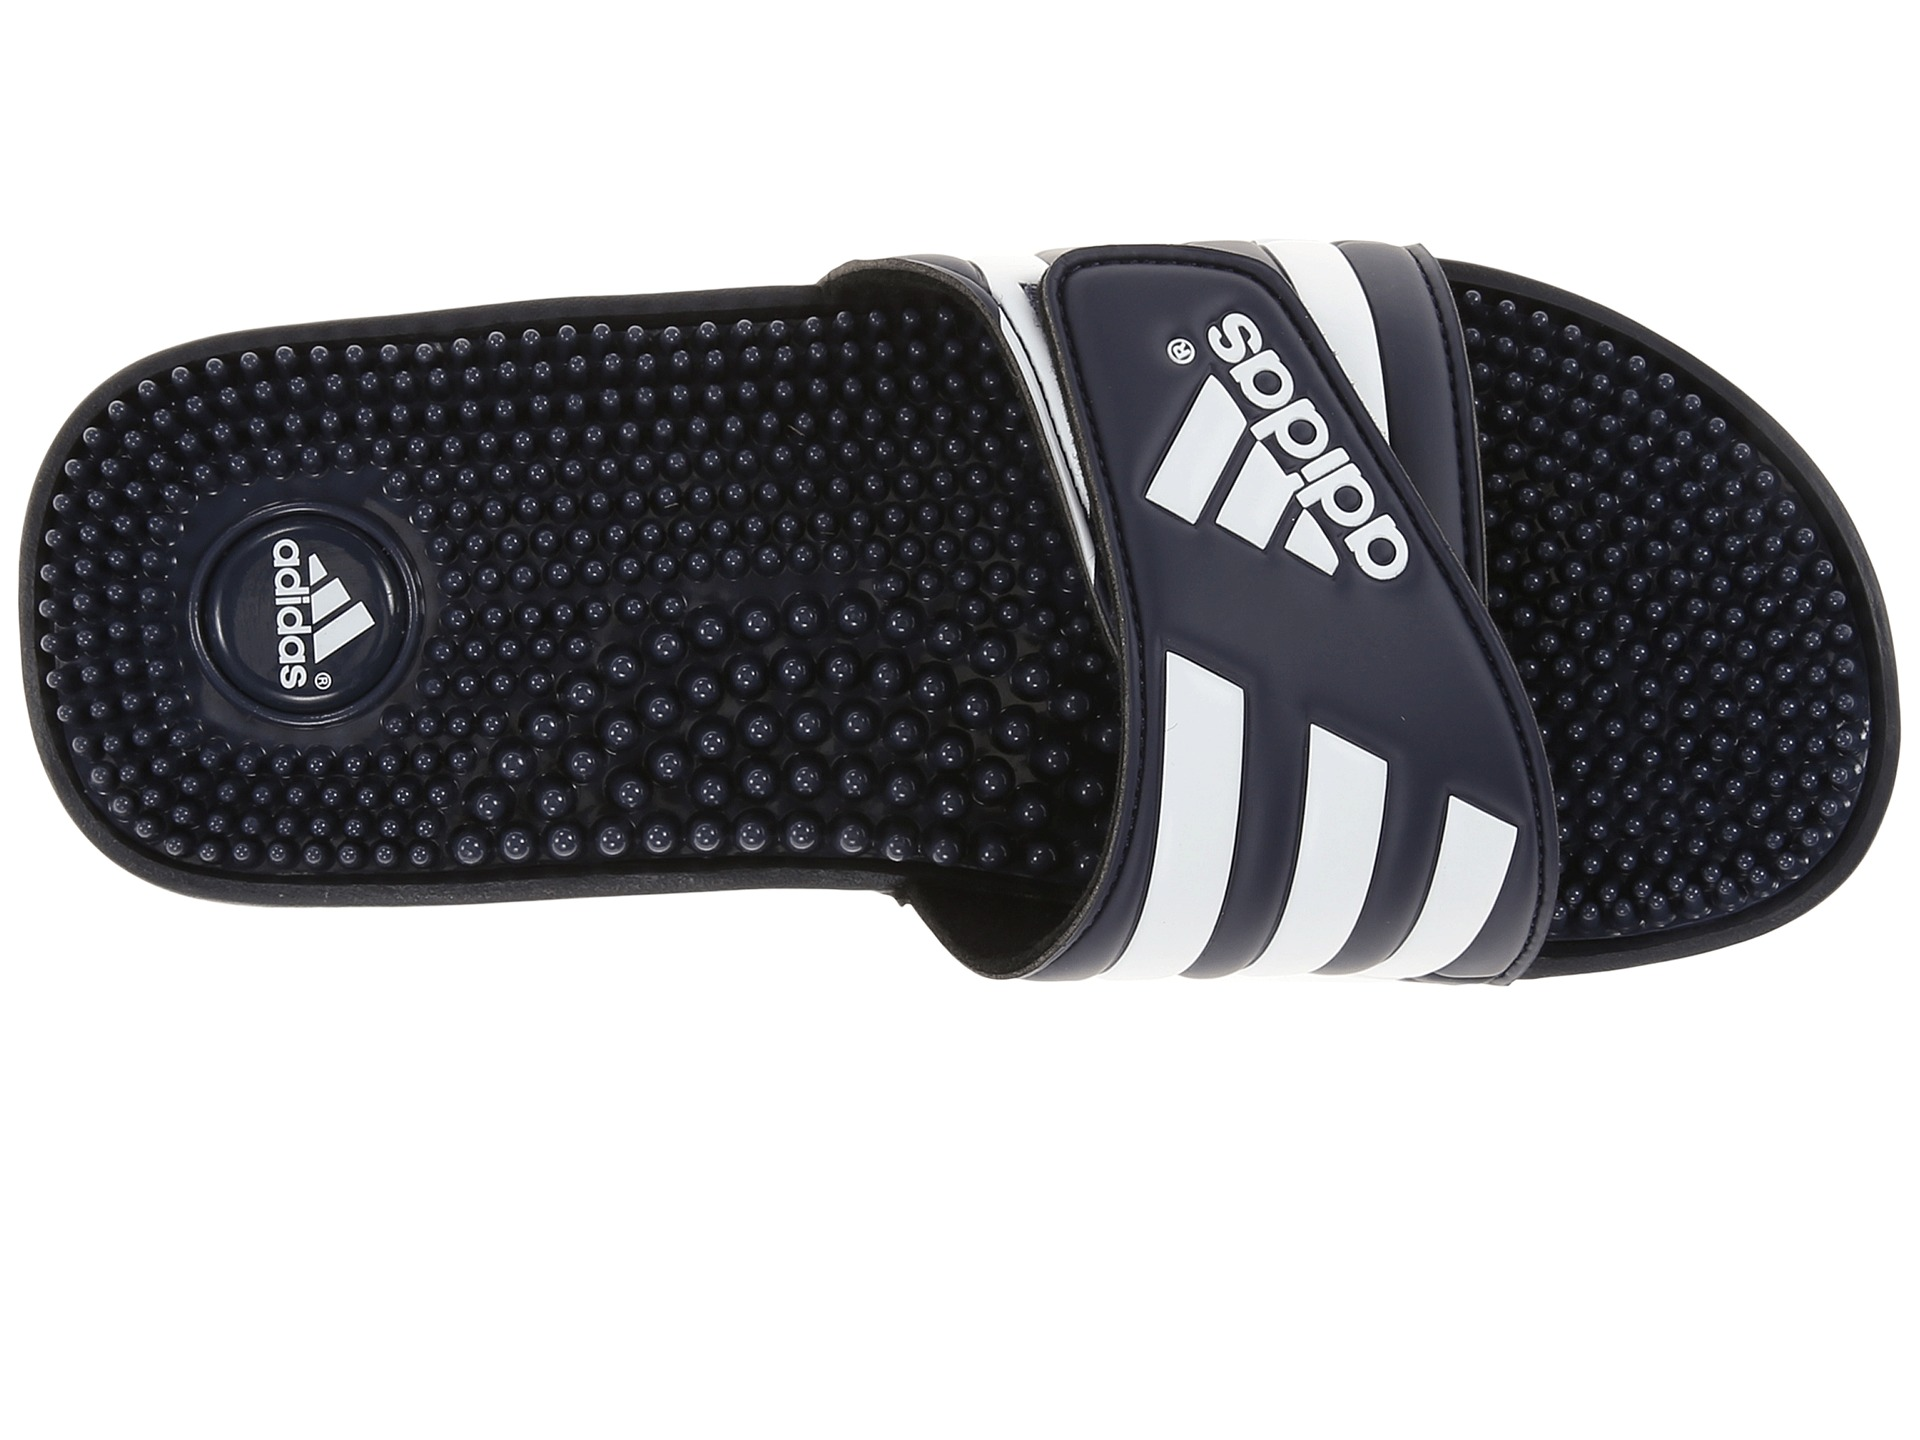 Sandals On Salegt; Adidas With Off35Discounts Bumps 80nwOmvN